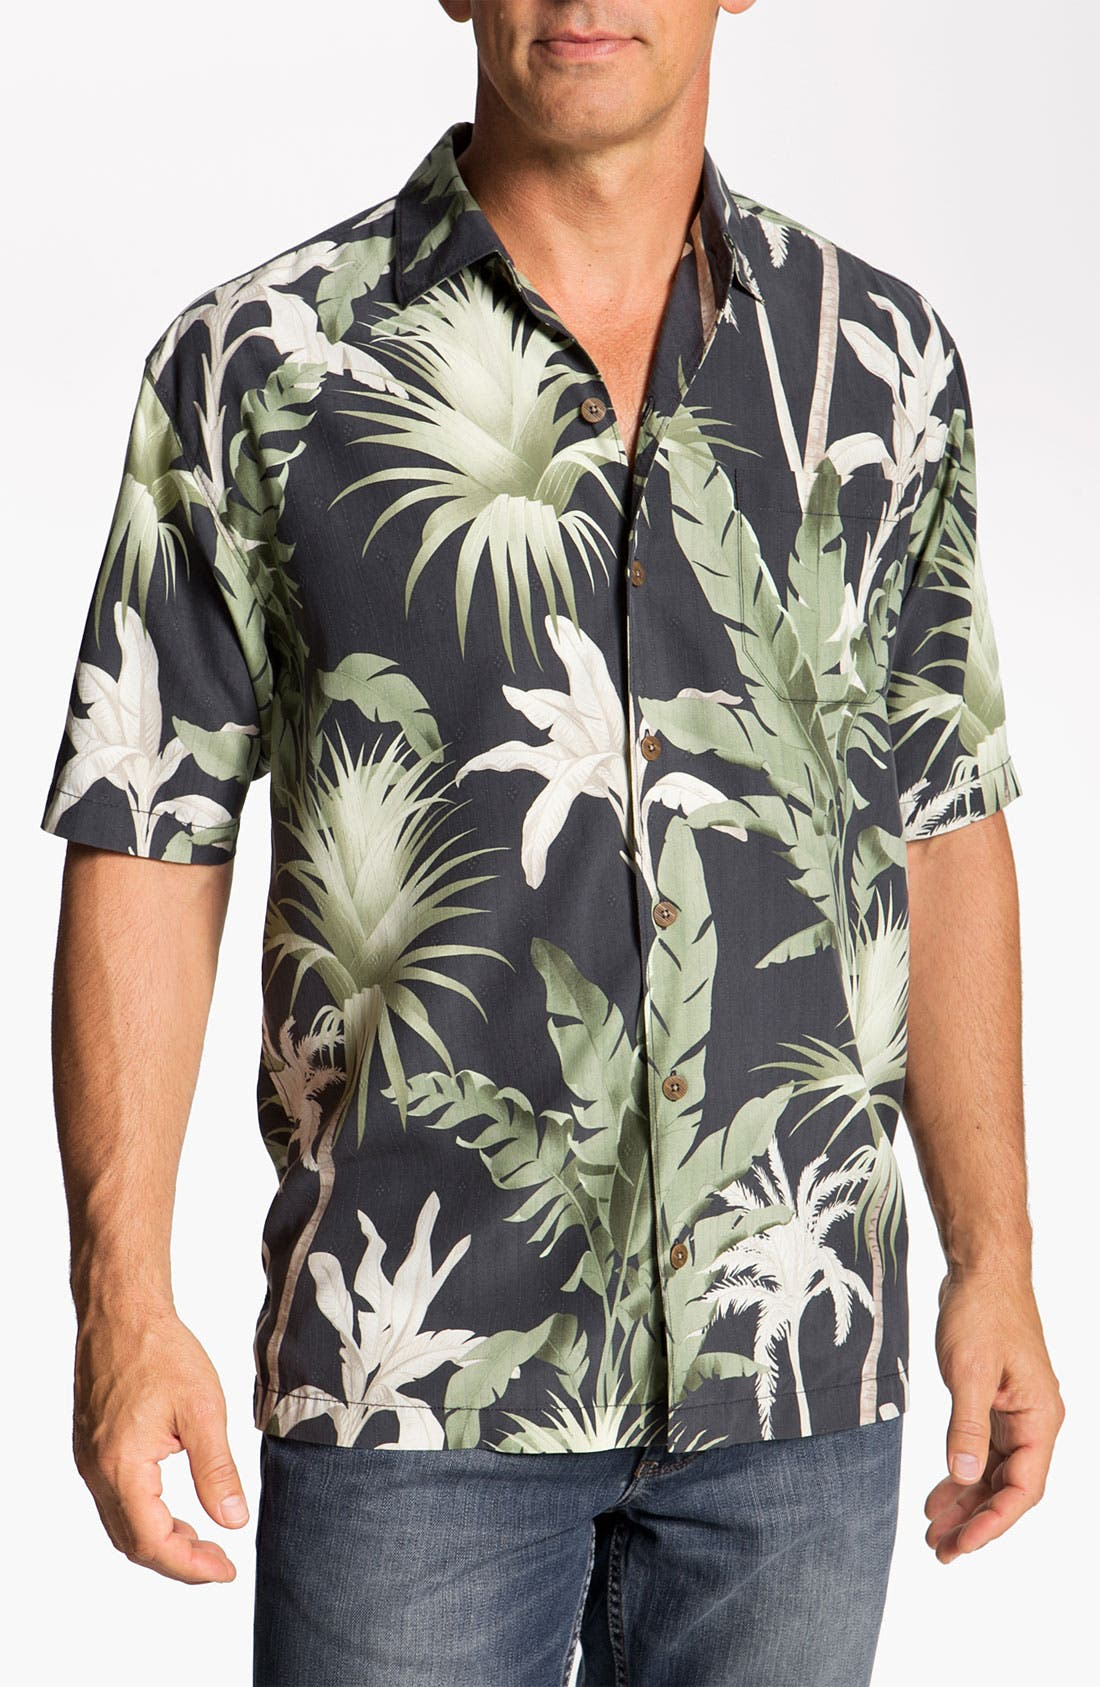 Alternate Image 1 Selected - Tommy Bahama 'Major Palm' Silk Campshirt